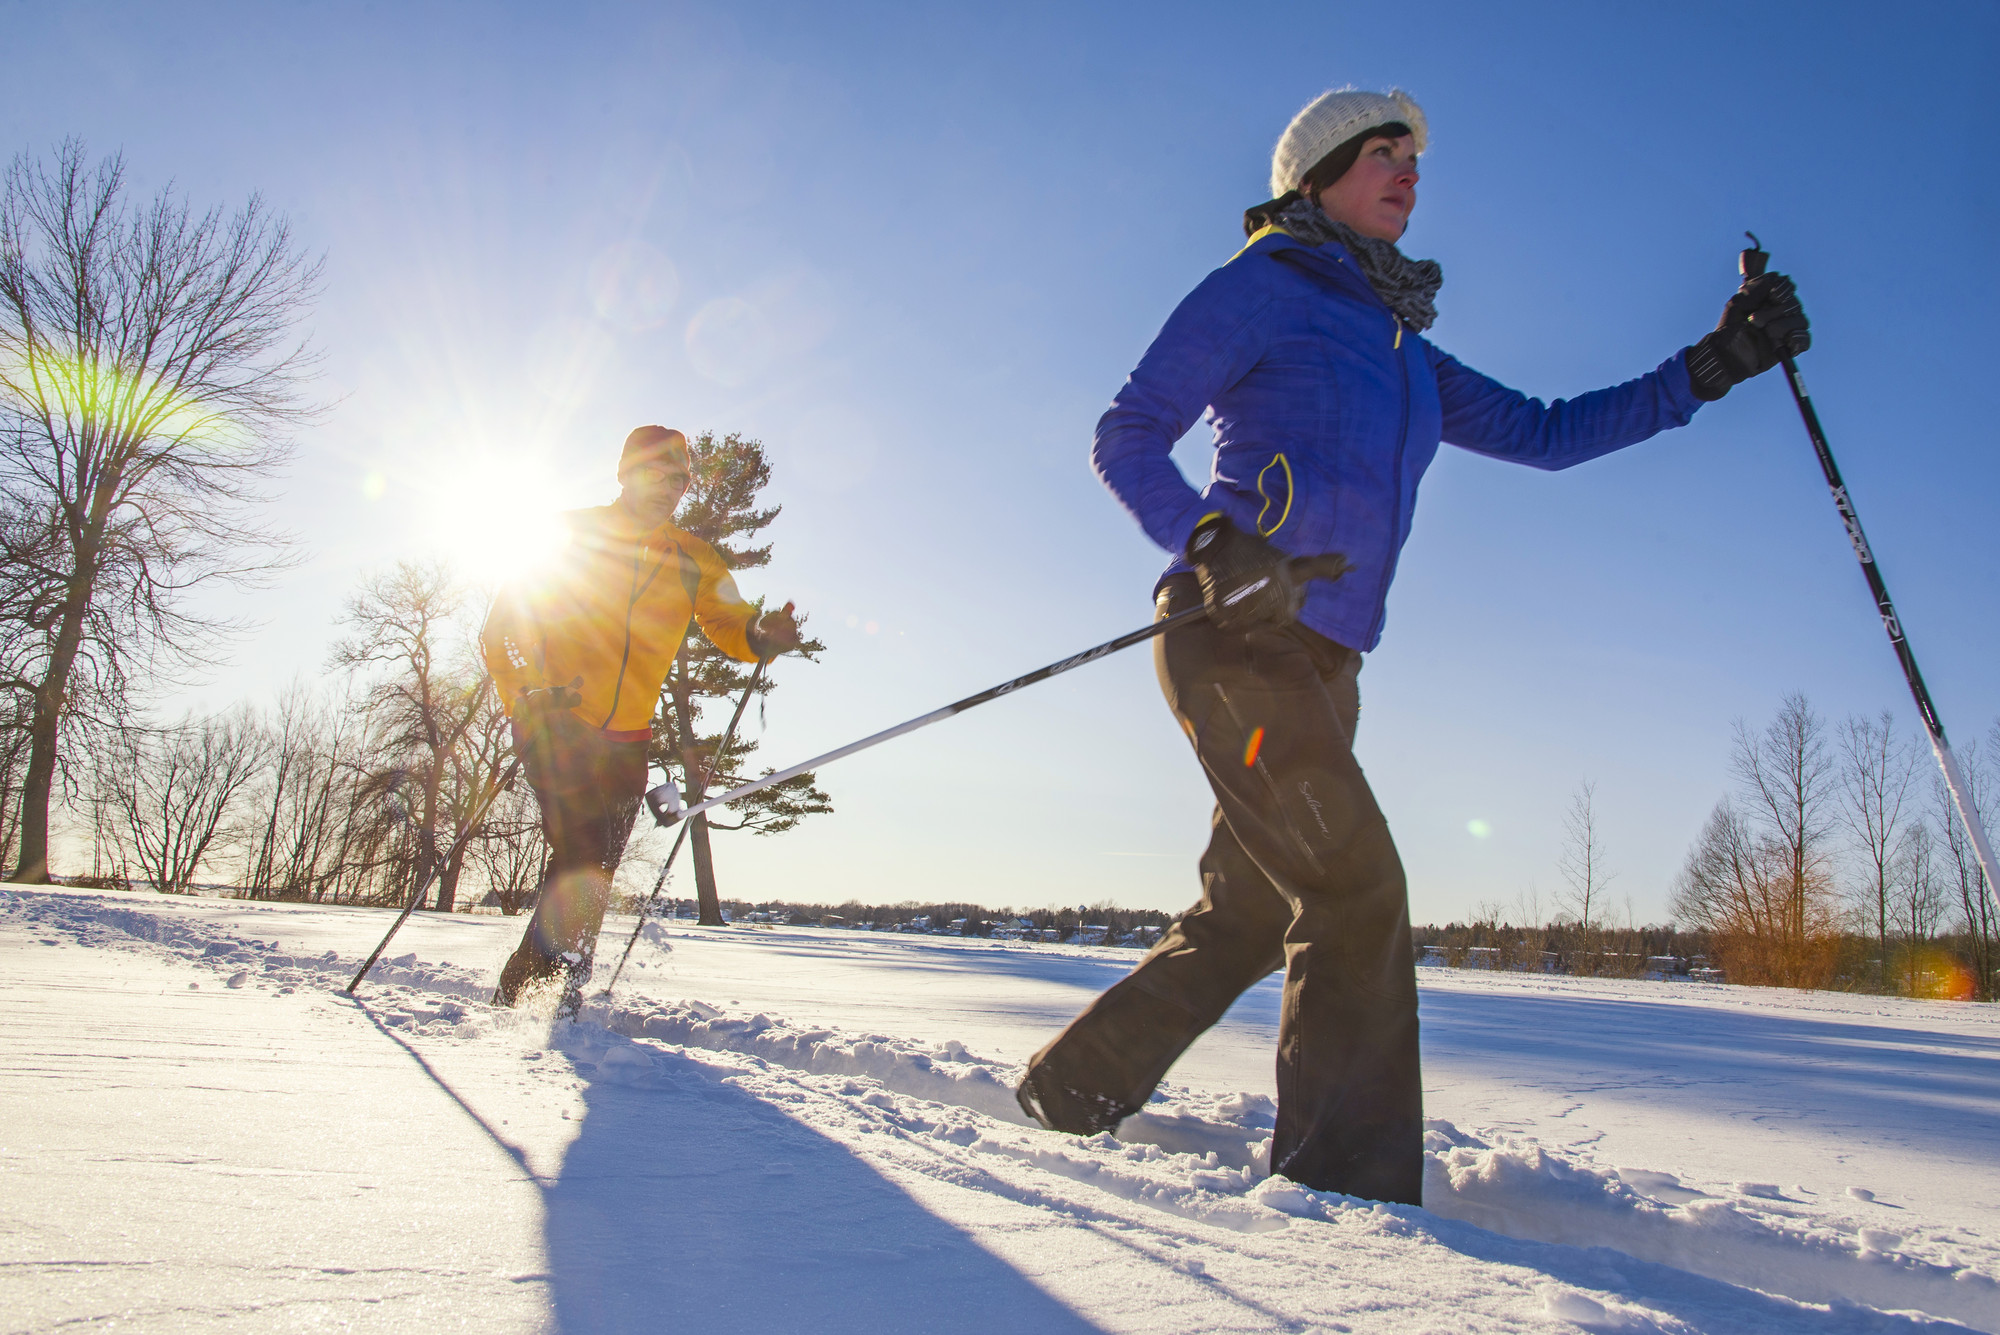 Whether you're new cross-country skiing or a veteran, there are plenty of trails for you at conservation areas here.